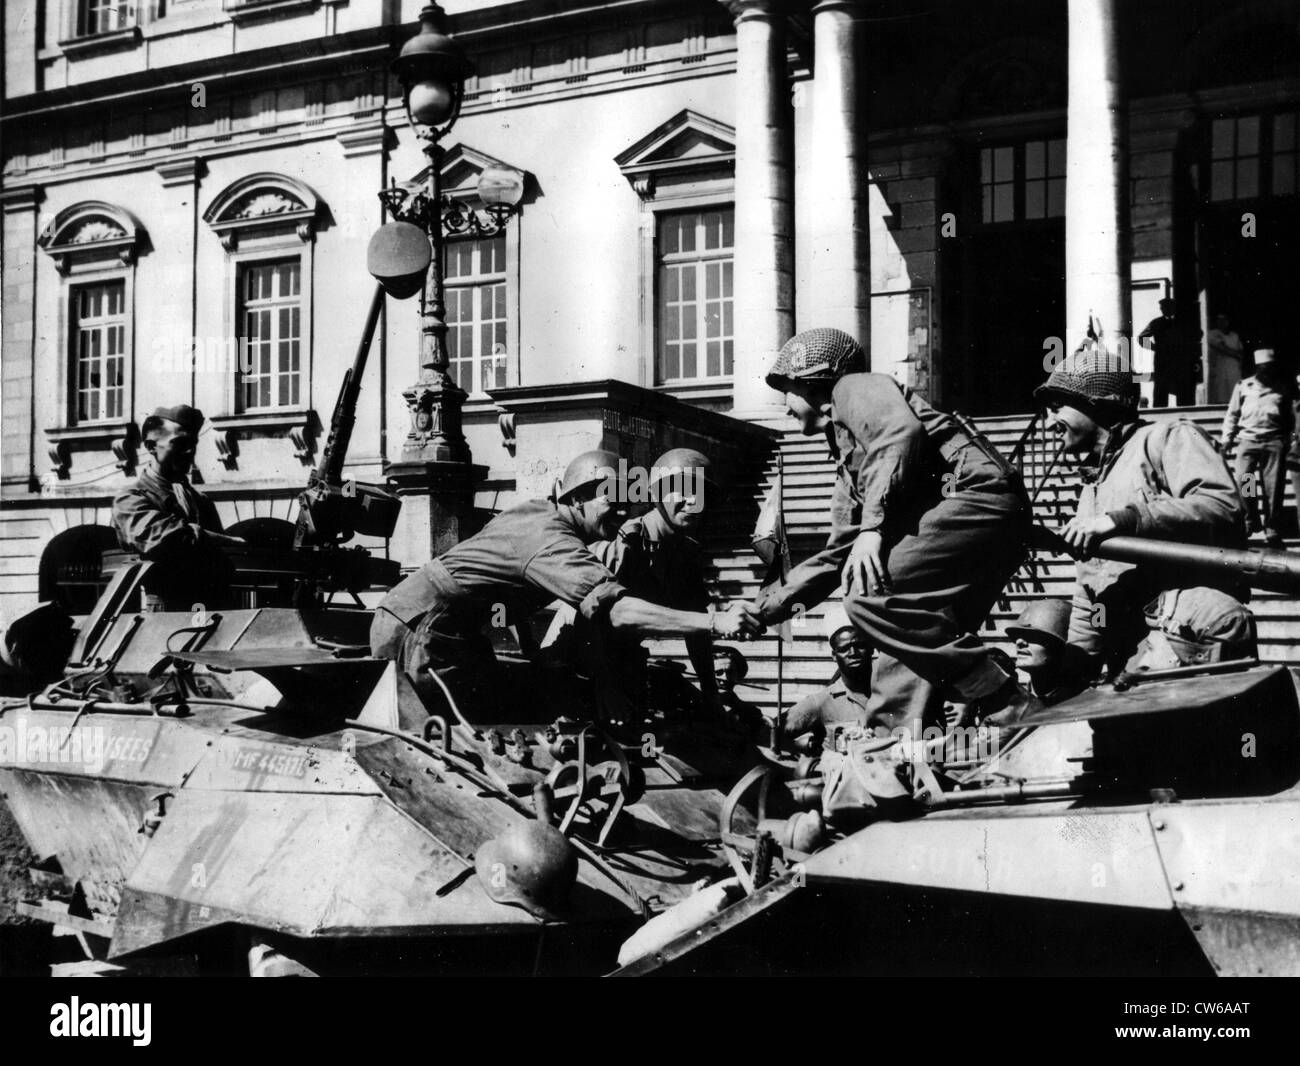 3rd and 7th U.S Armies meet in Autun (France) - Stock Image